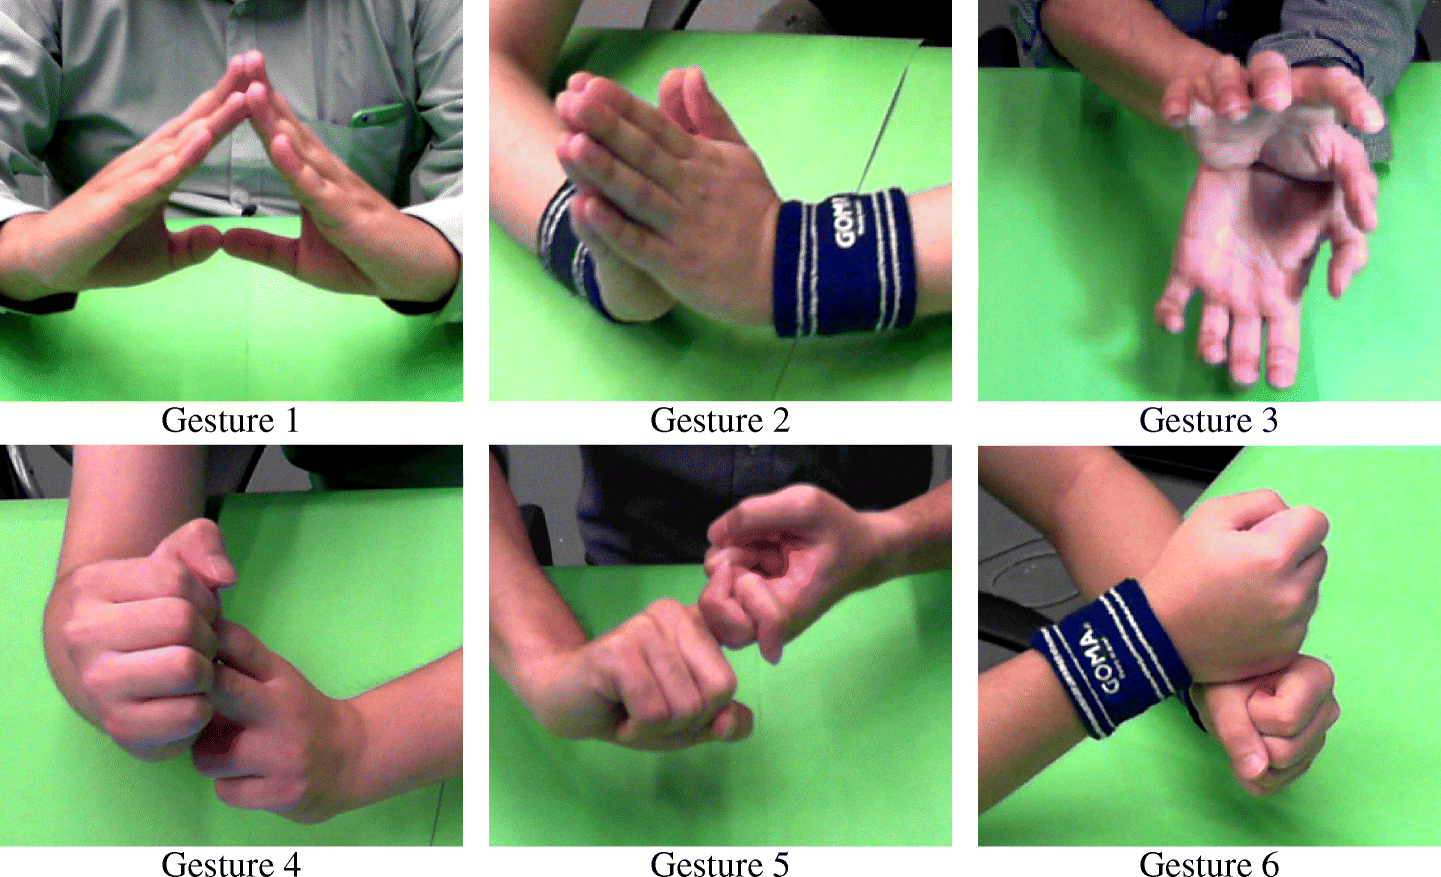 Occlusion-robust bimanual gesture recognition by fusing multi-views